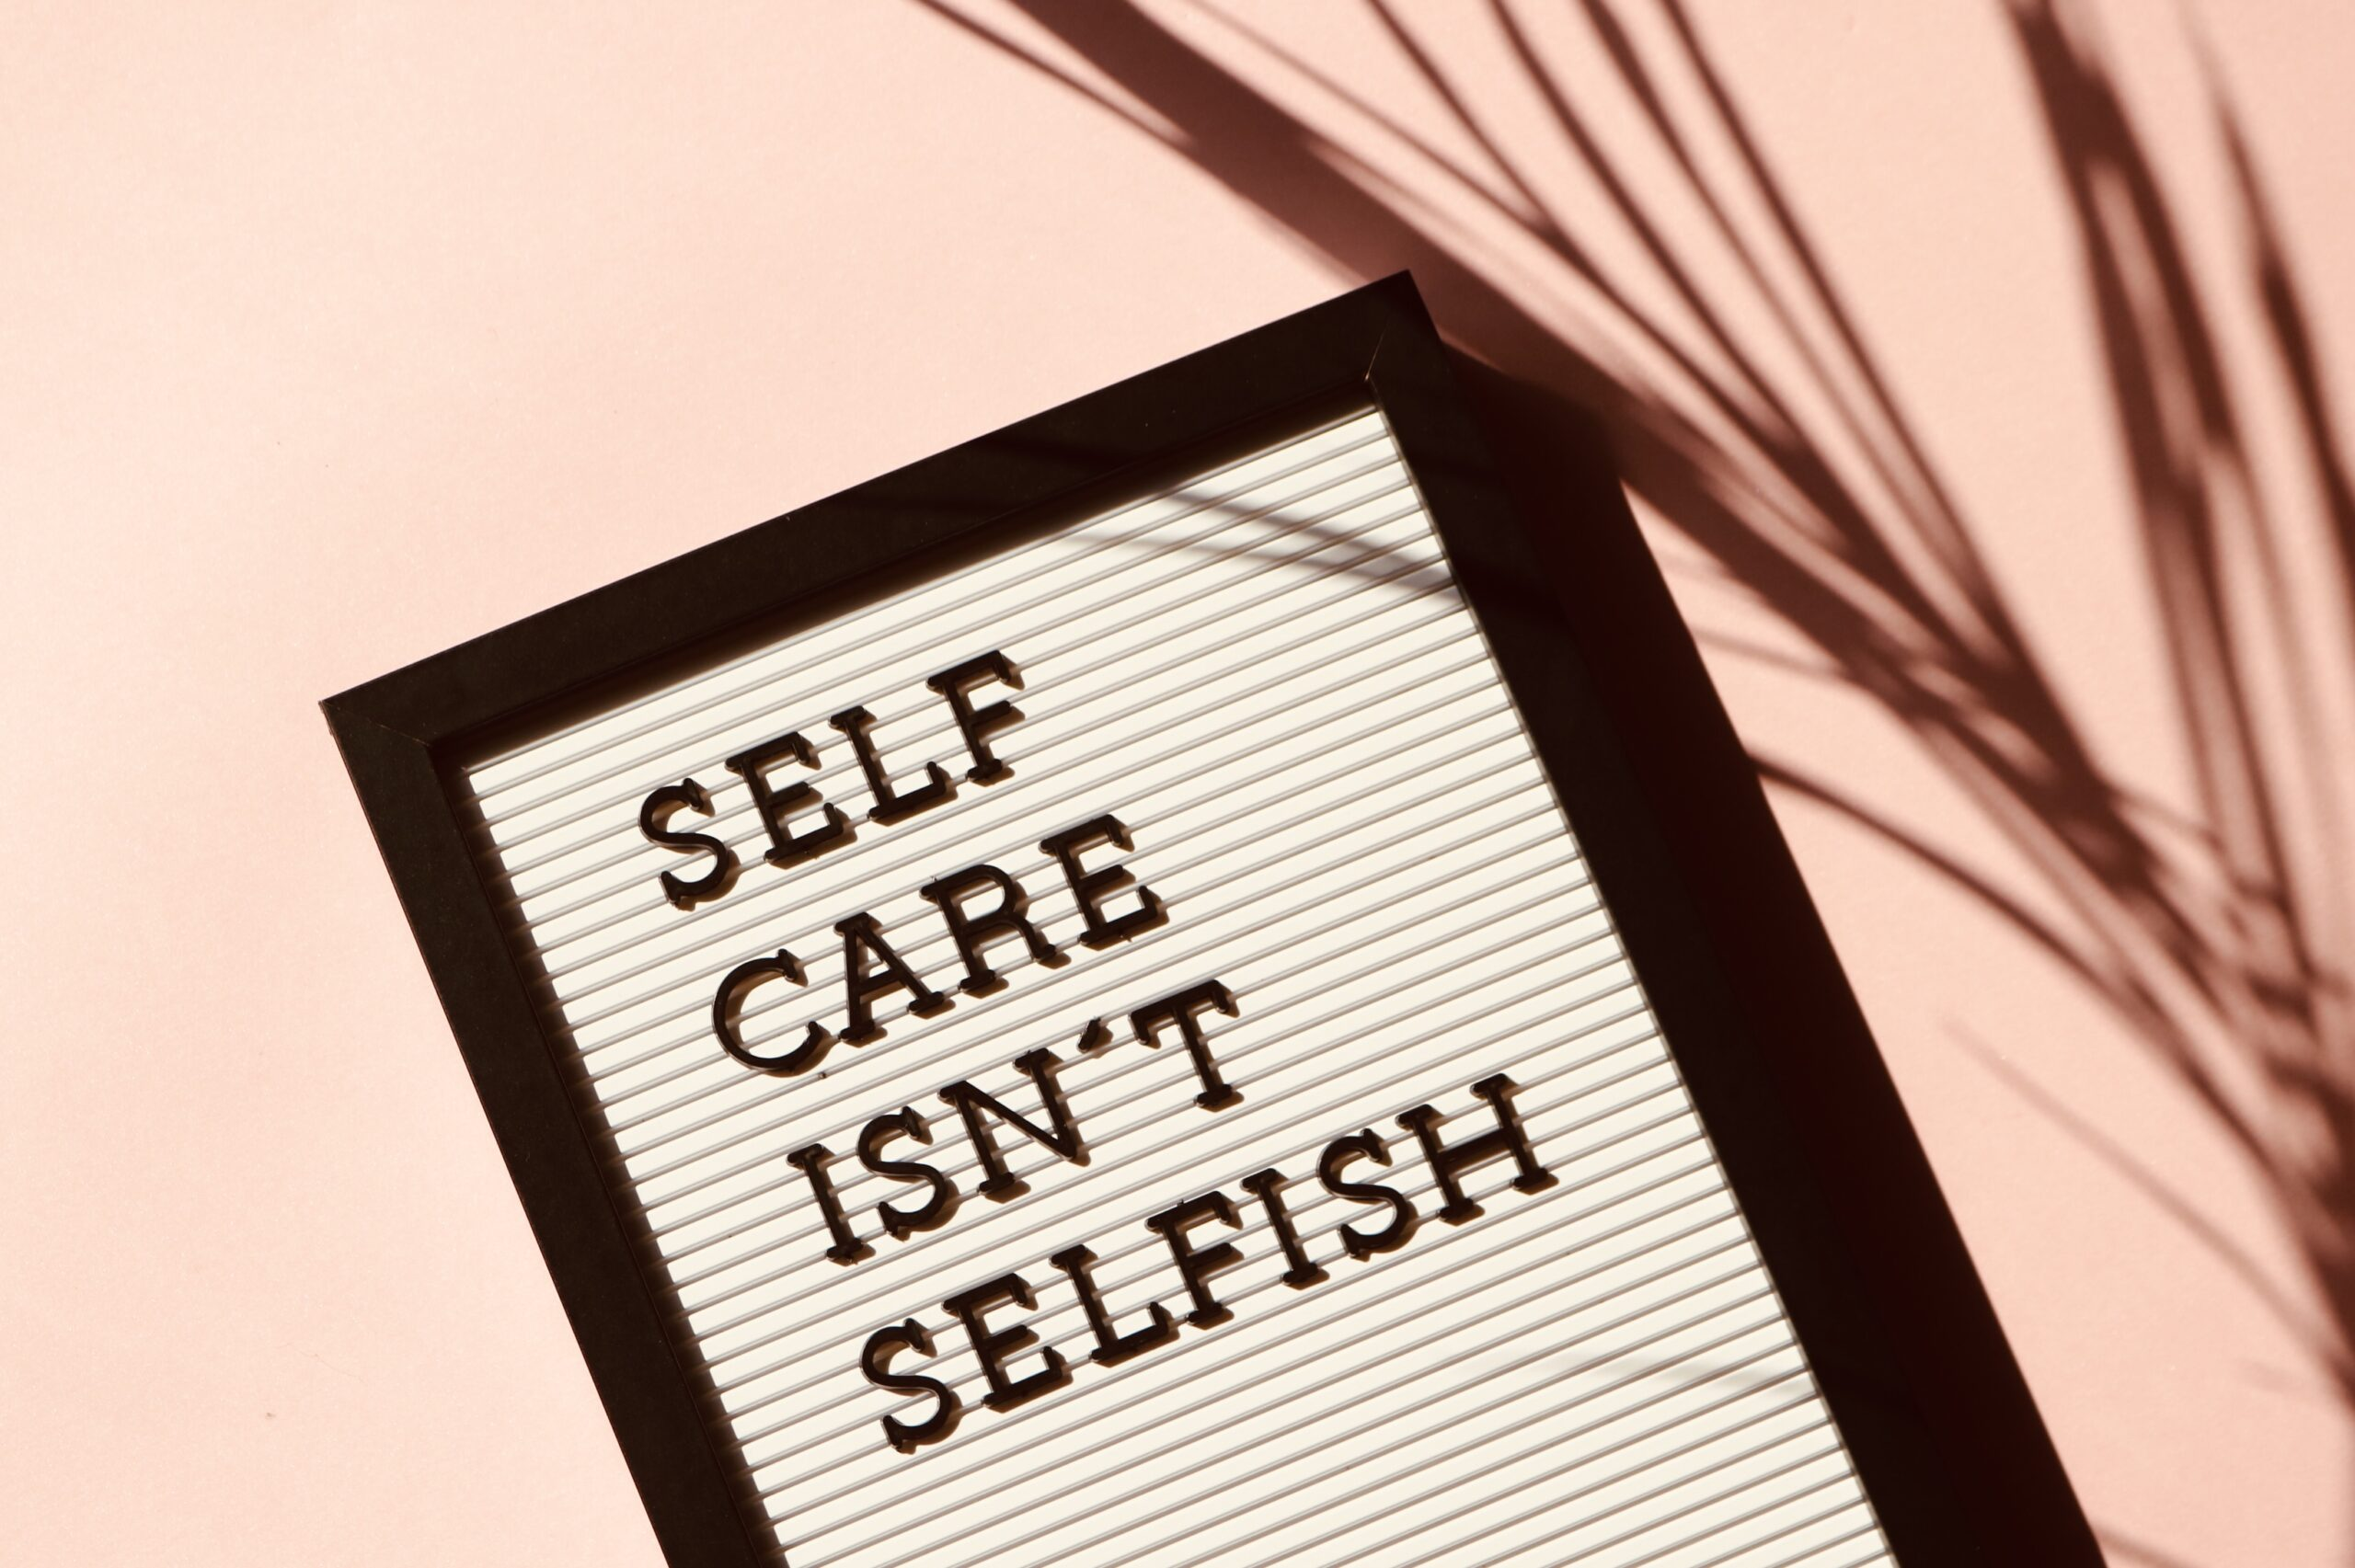 What You Need To Know About Self-Care